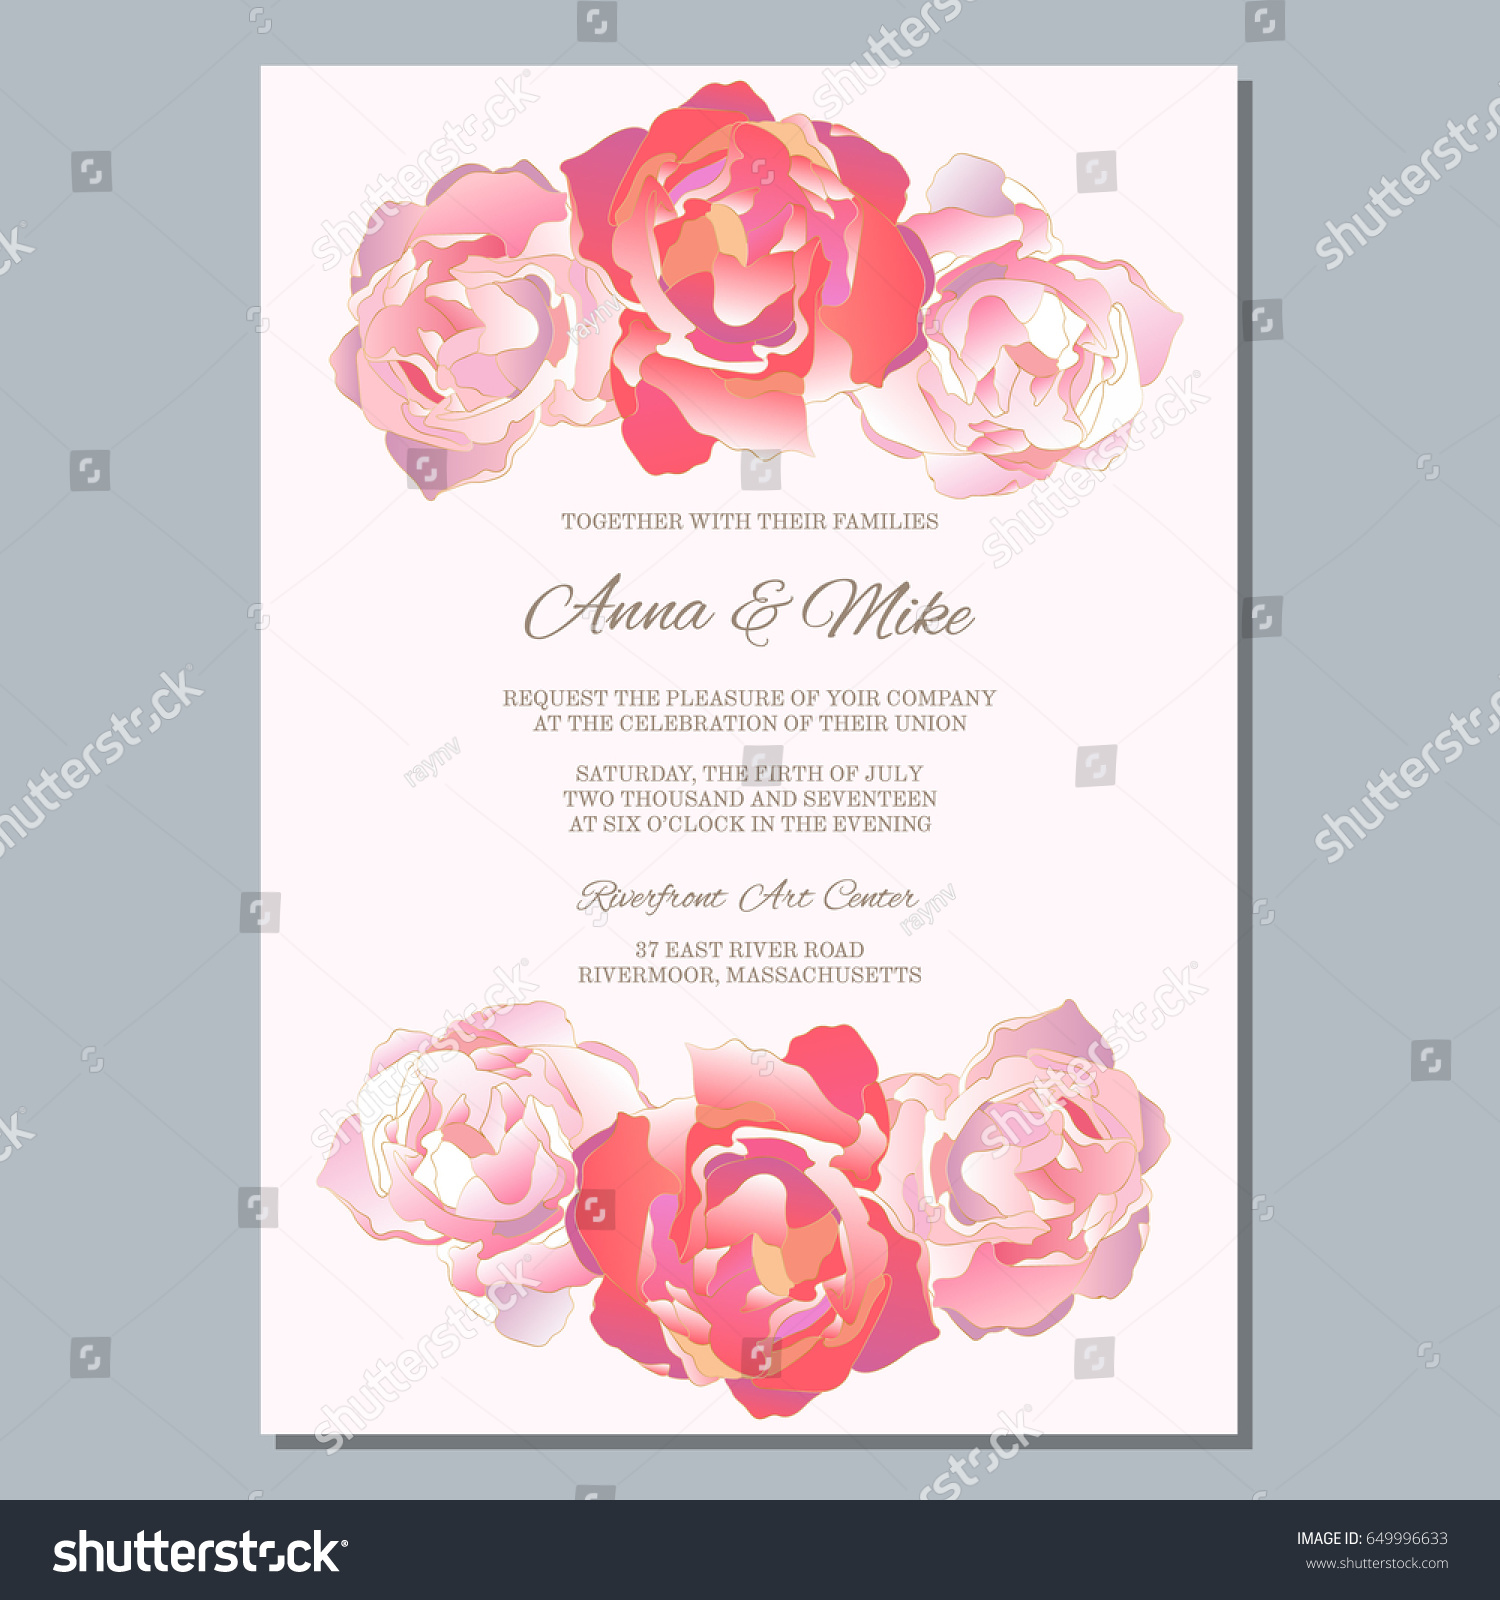 Wedding Invitation Template Roses Thank You Stock Vector 649996633 ...